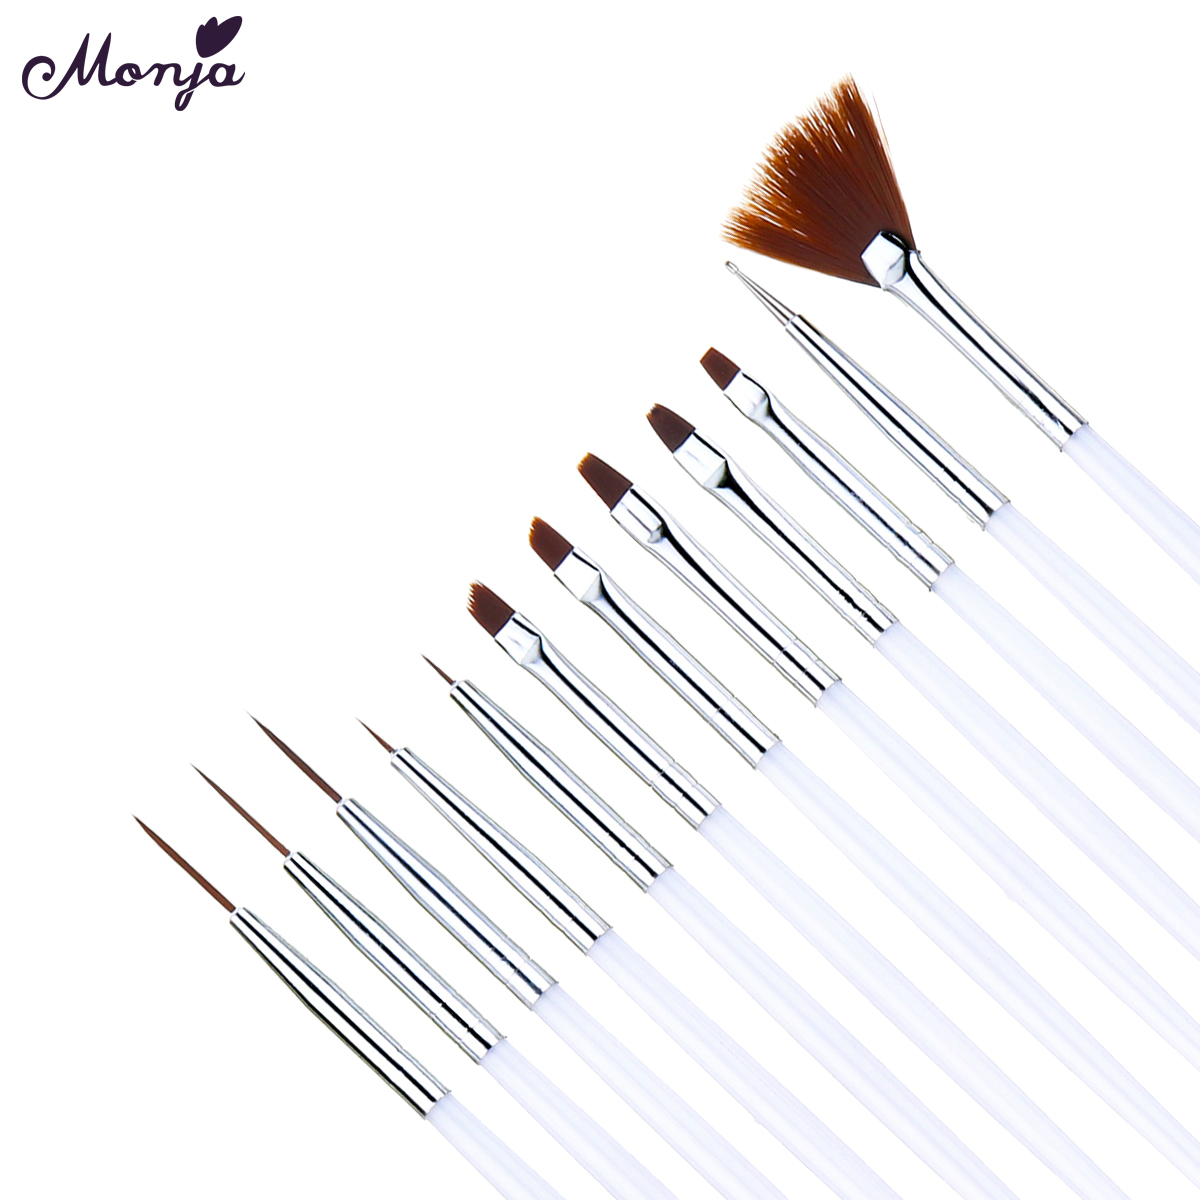 Monja Nail Art Brush With French Design Lines Made With Metal And Fiber Hair Material For Nail Art Salon Tools 2